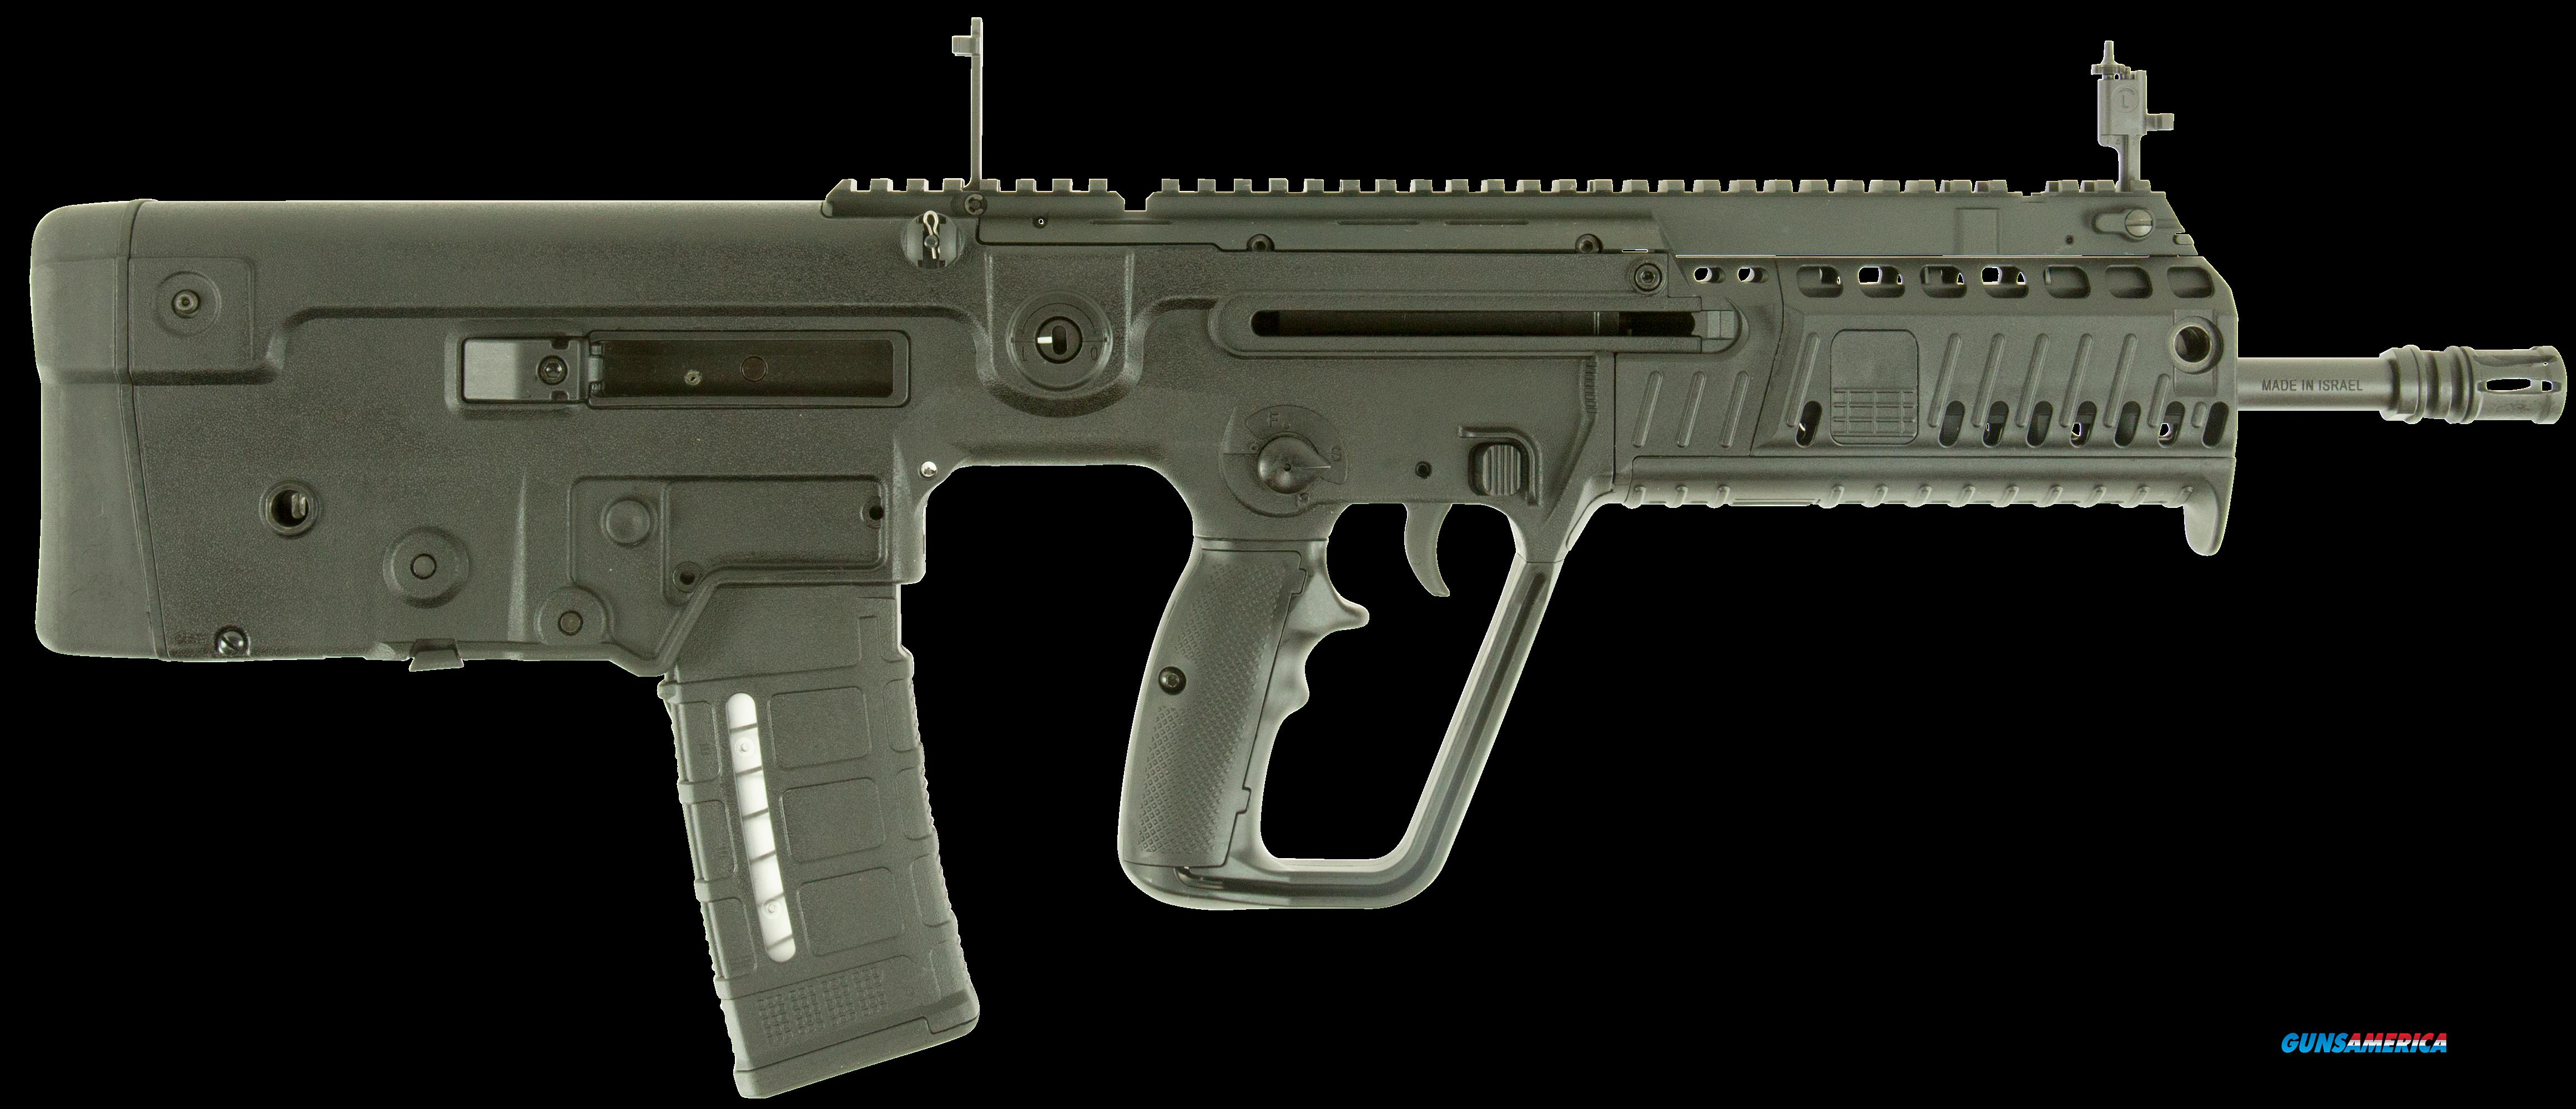 "IWI US X16BLK Tavor X95 Semi-Automatic 300 AAC Blackout/Whisper (7.62x35mm) 16.5"" 30+1 Polymer Black  Guns > Rifles > IWI"